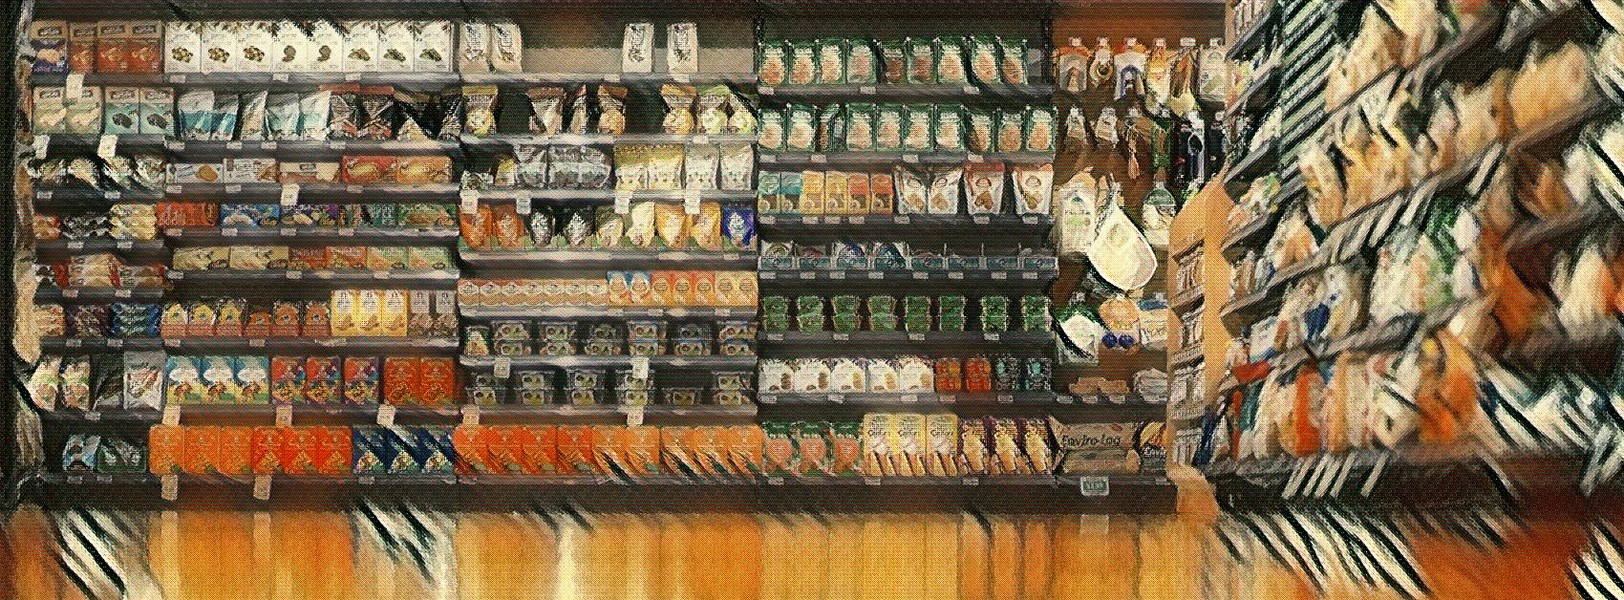 The future challenges of today's supermarkets